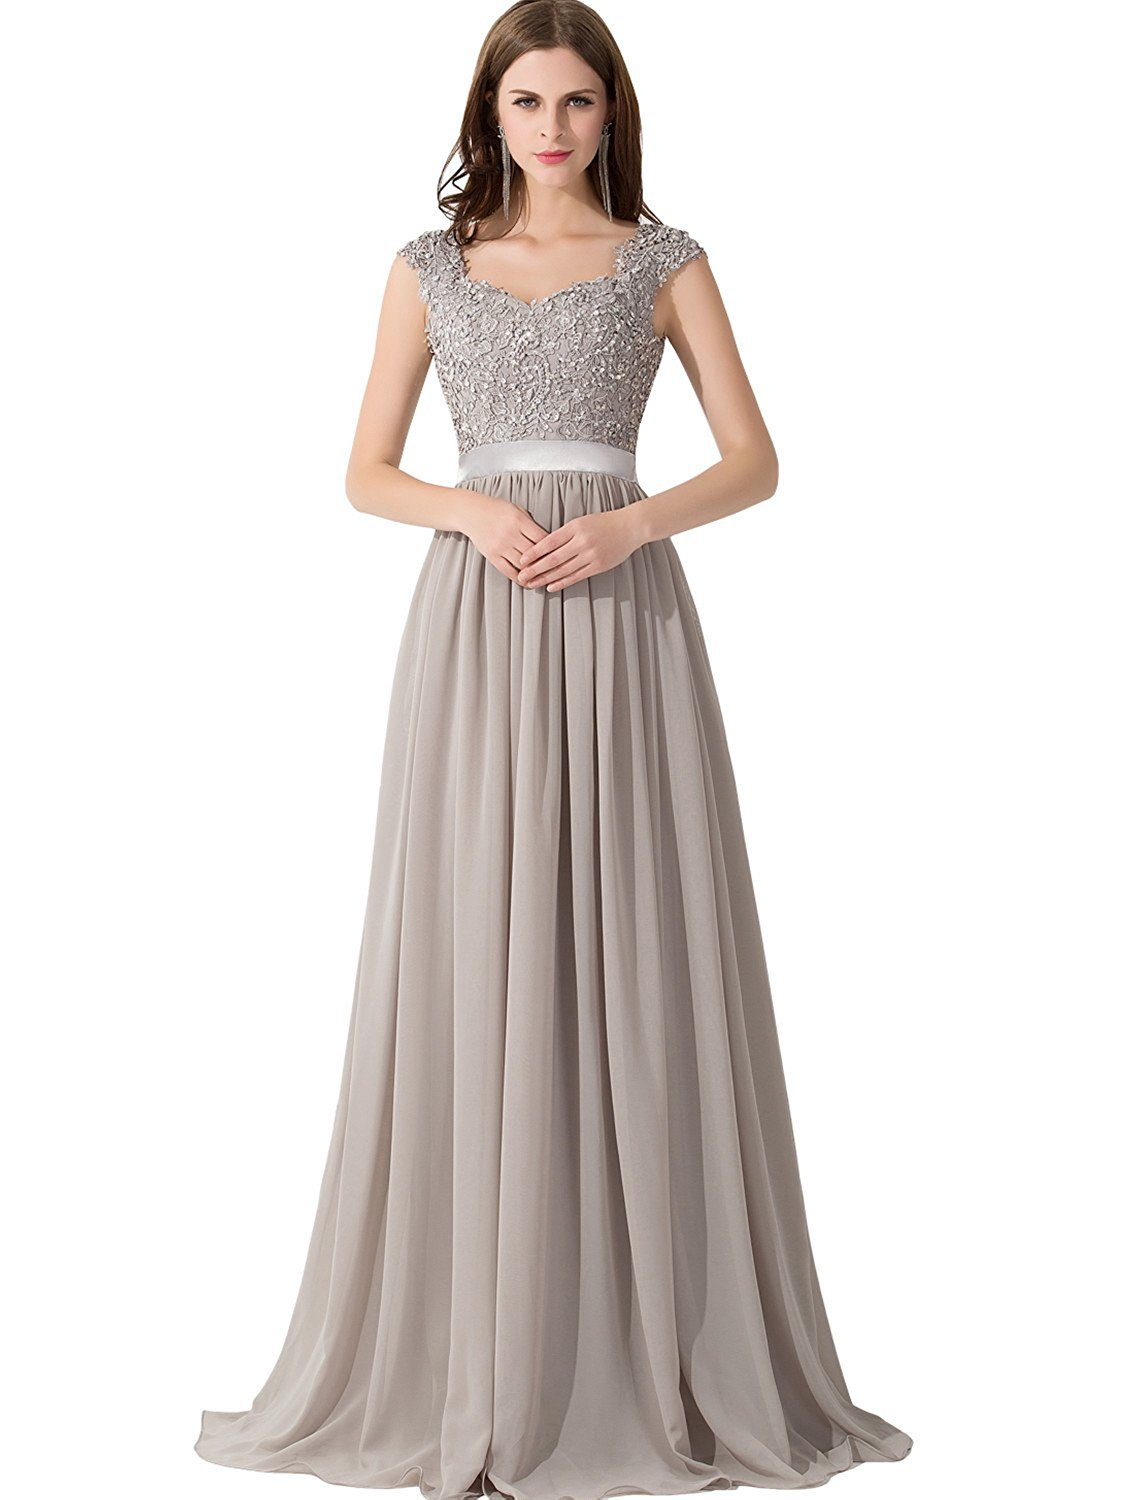 5328a0b3679138 Galleon - Womens Lace Chiffon Long Bridesmaid Dress For Wedding  Party